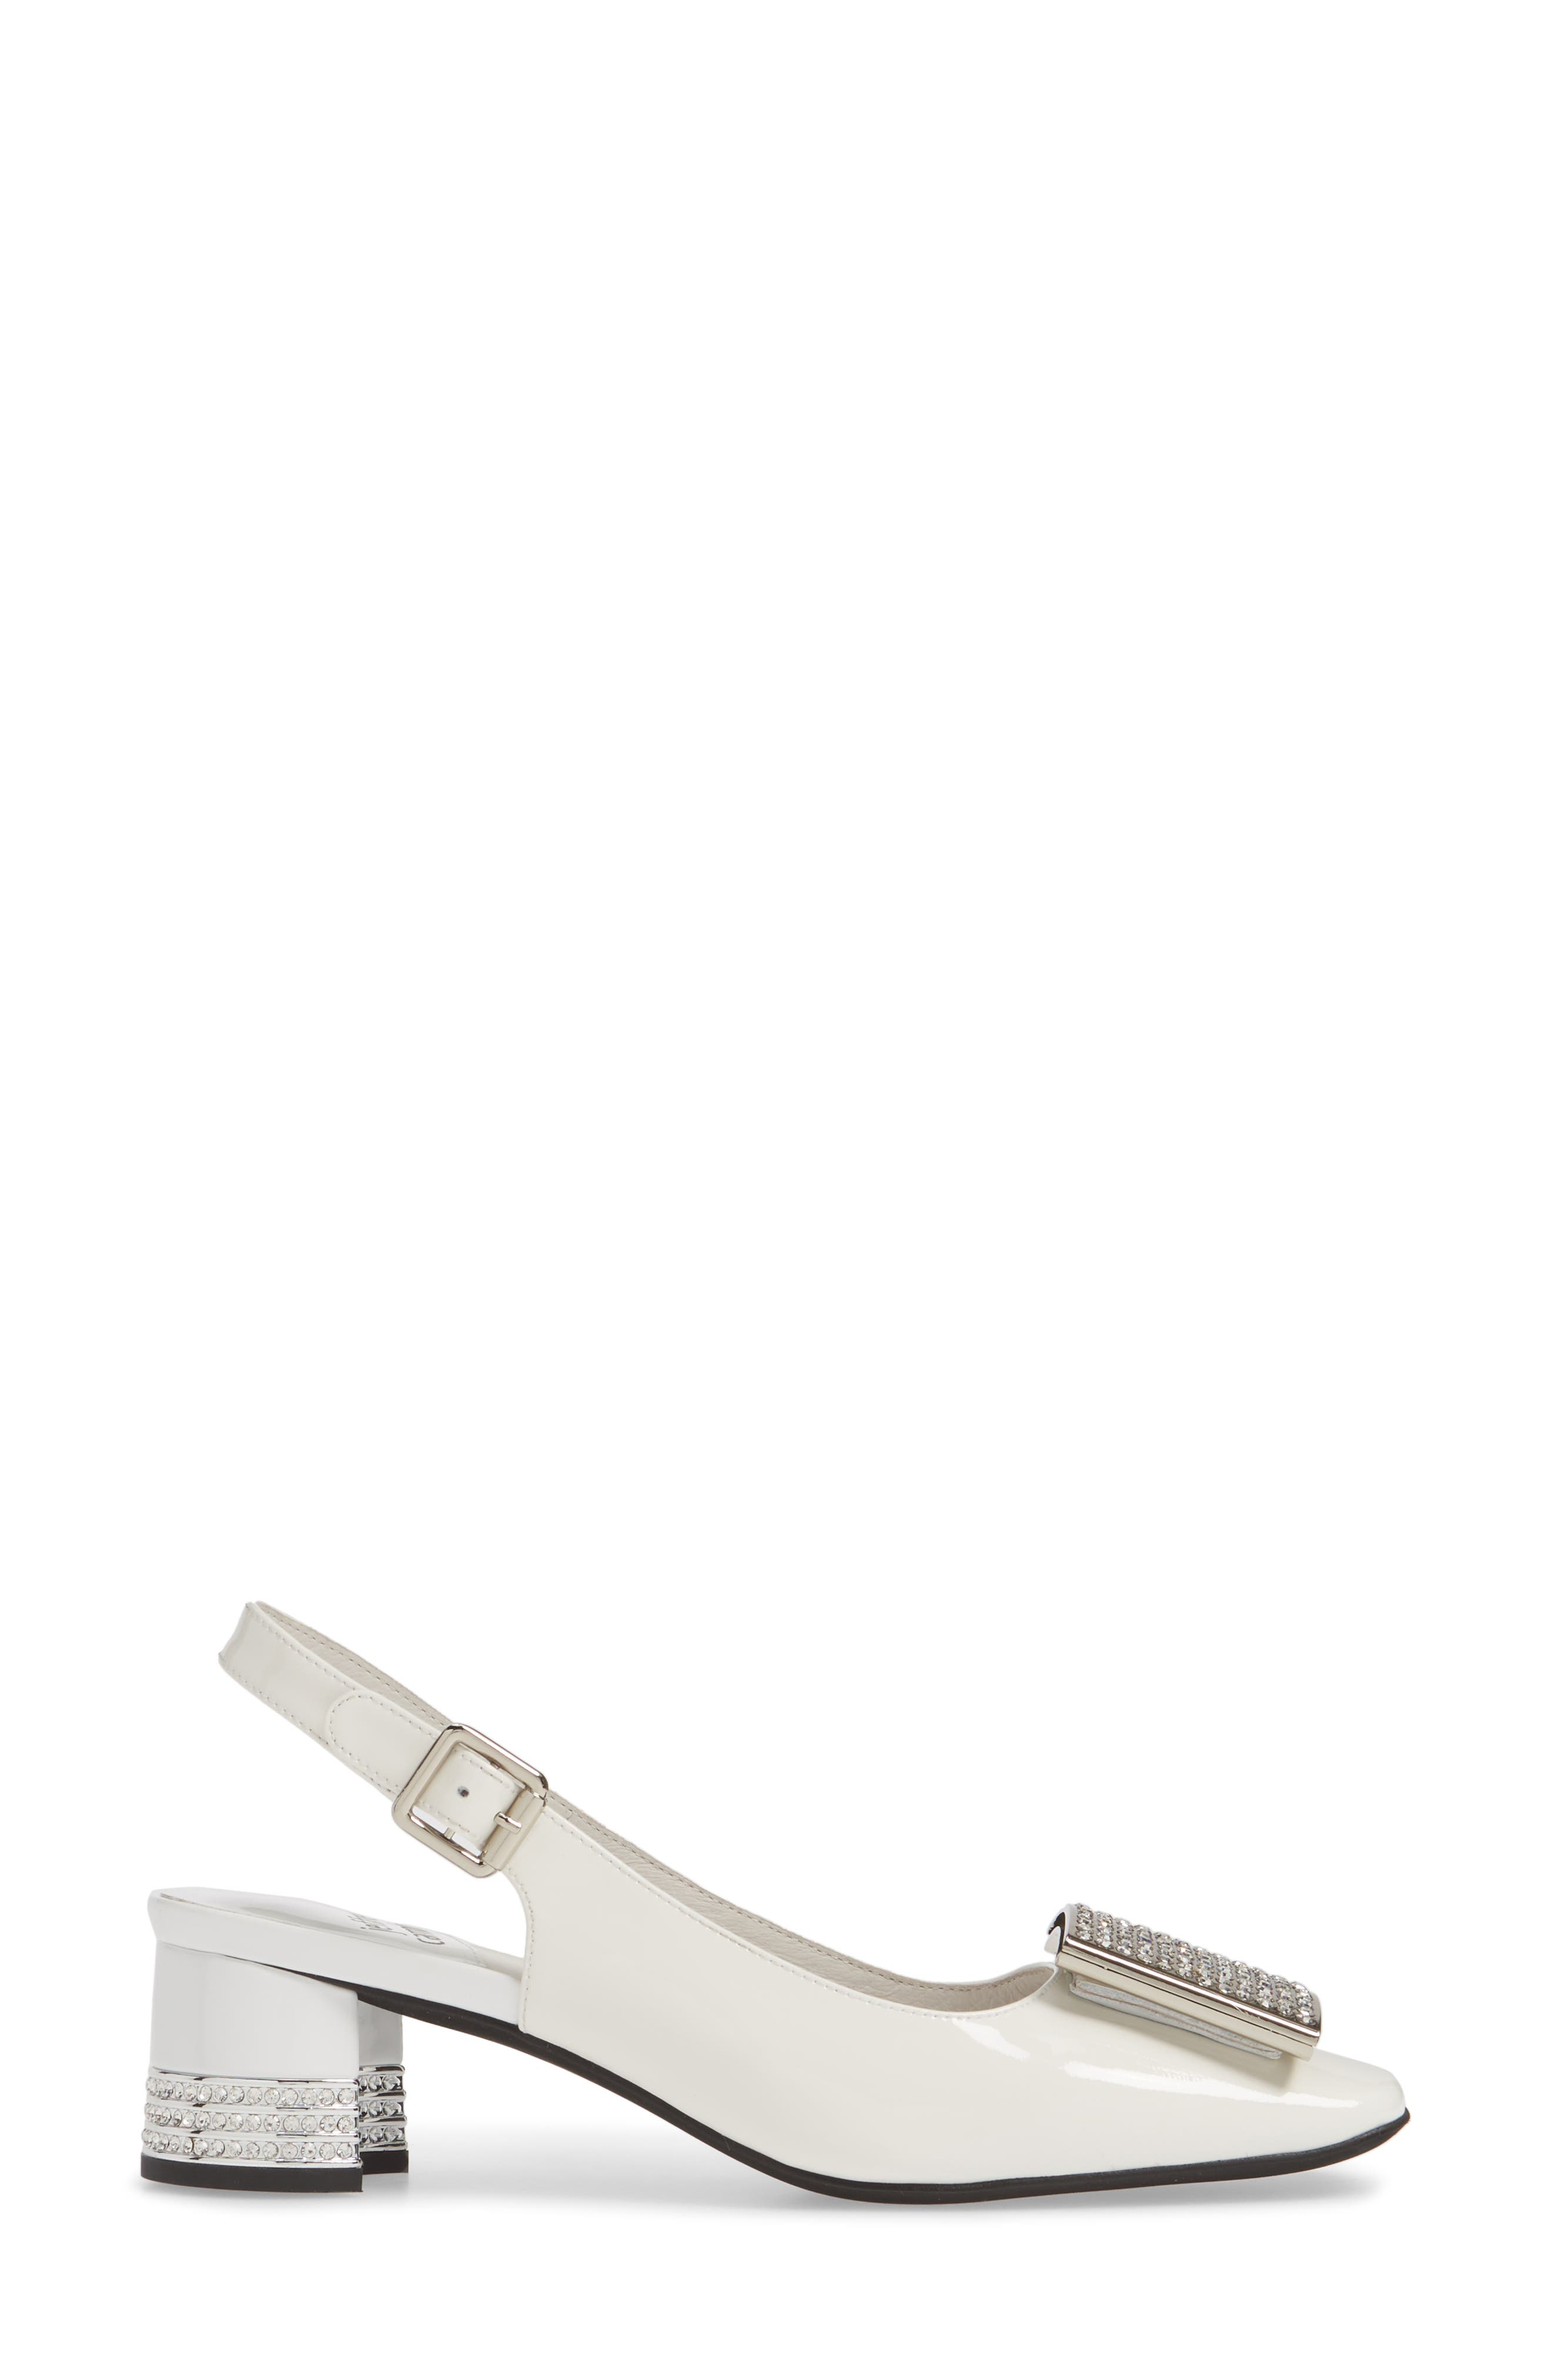 JEFFREY CAMPBELL, Billion Jewel Slingback Pump, Alternate thumbnail 3, color, WHITE PATENT LEATHER/ SILVER